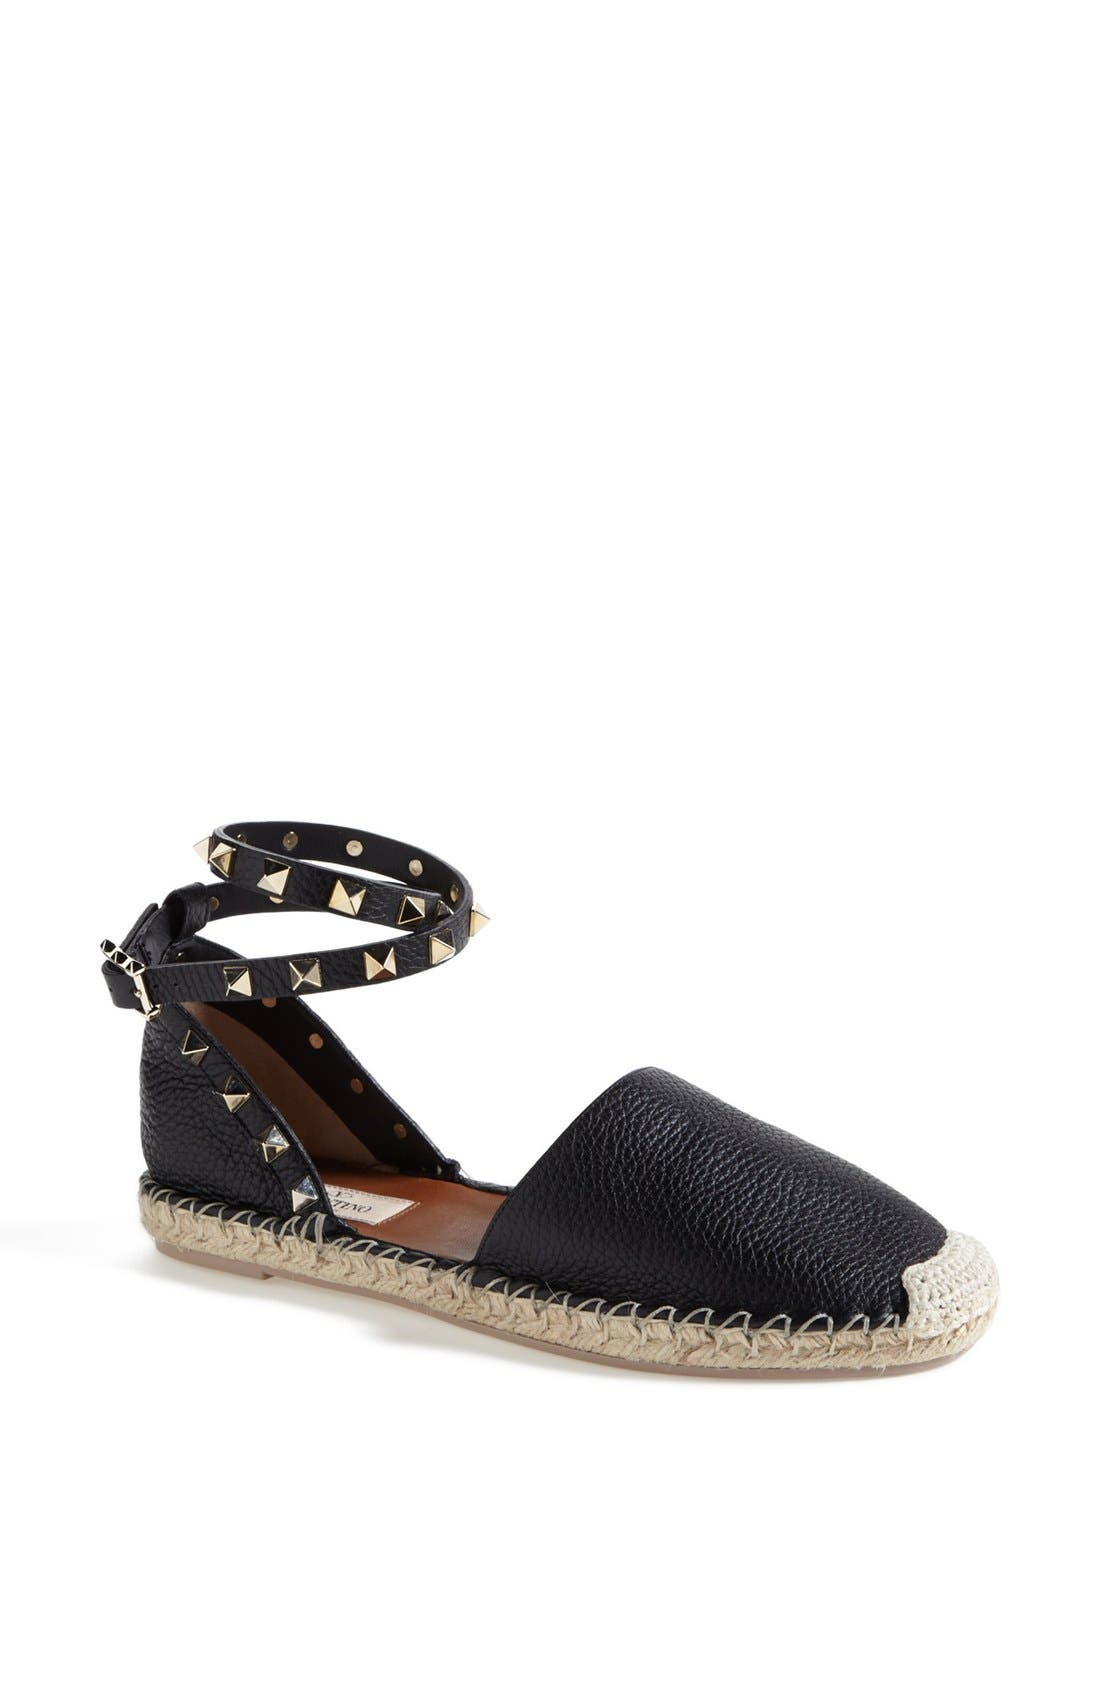 Alternate Image 1 Selected - Valentino Studded Ankle Wrap Espadrille Flat